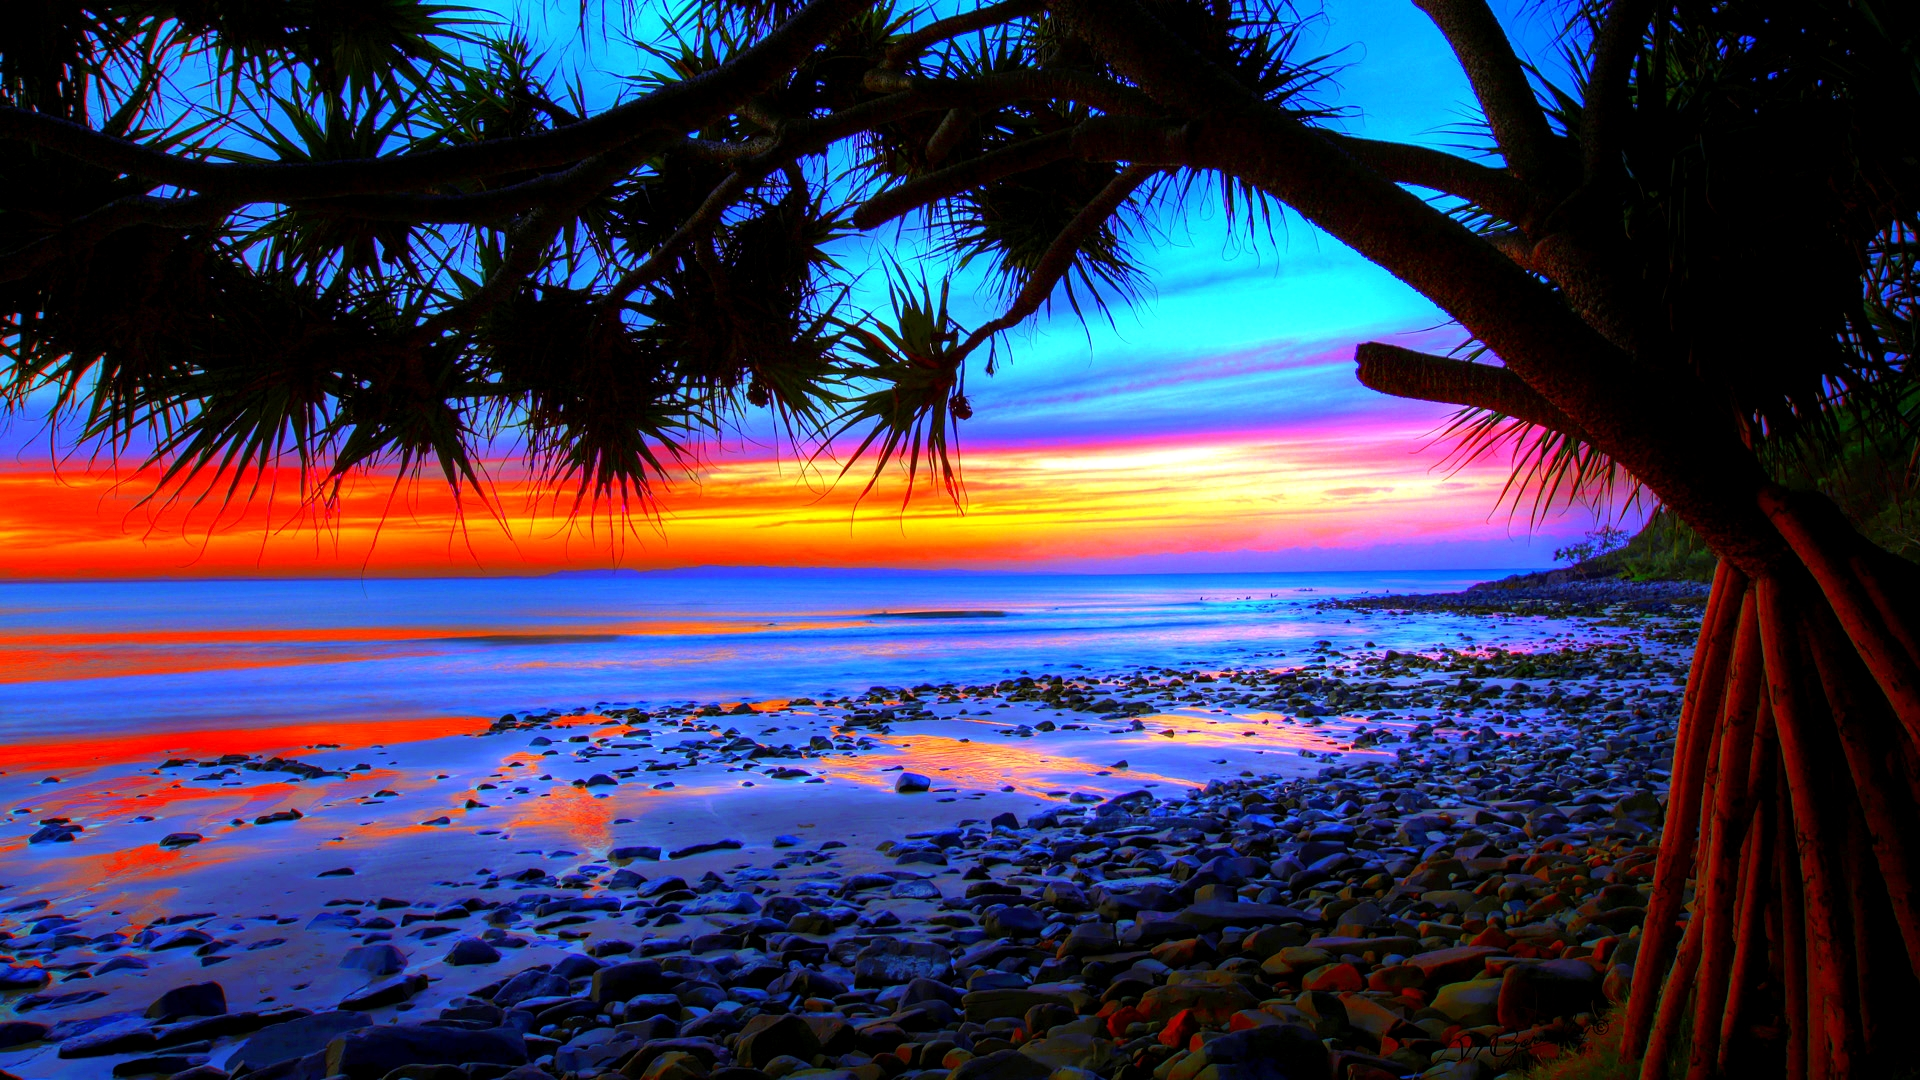 Sunset Over Beach Of Palm Trees Hd Wallpaper: Palm Tree Sunset Wallpaper